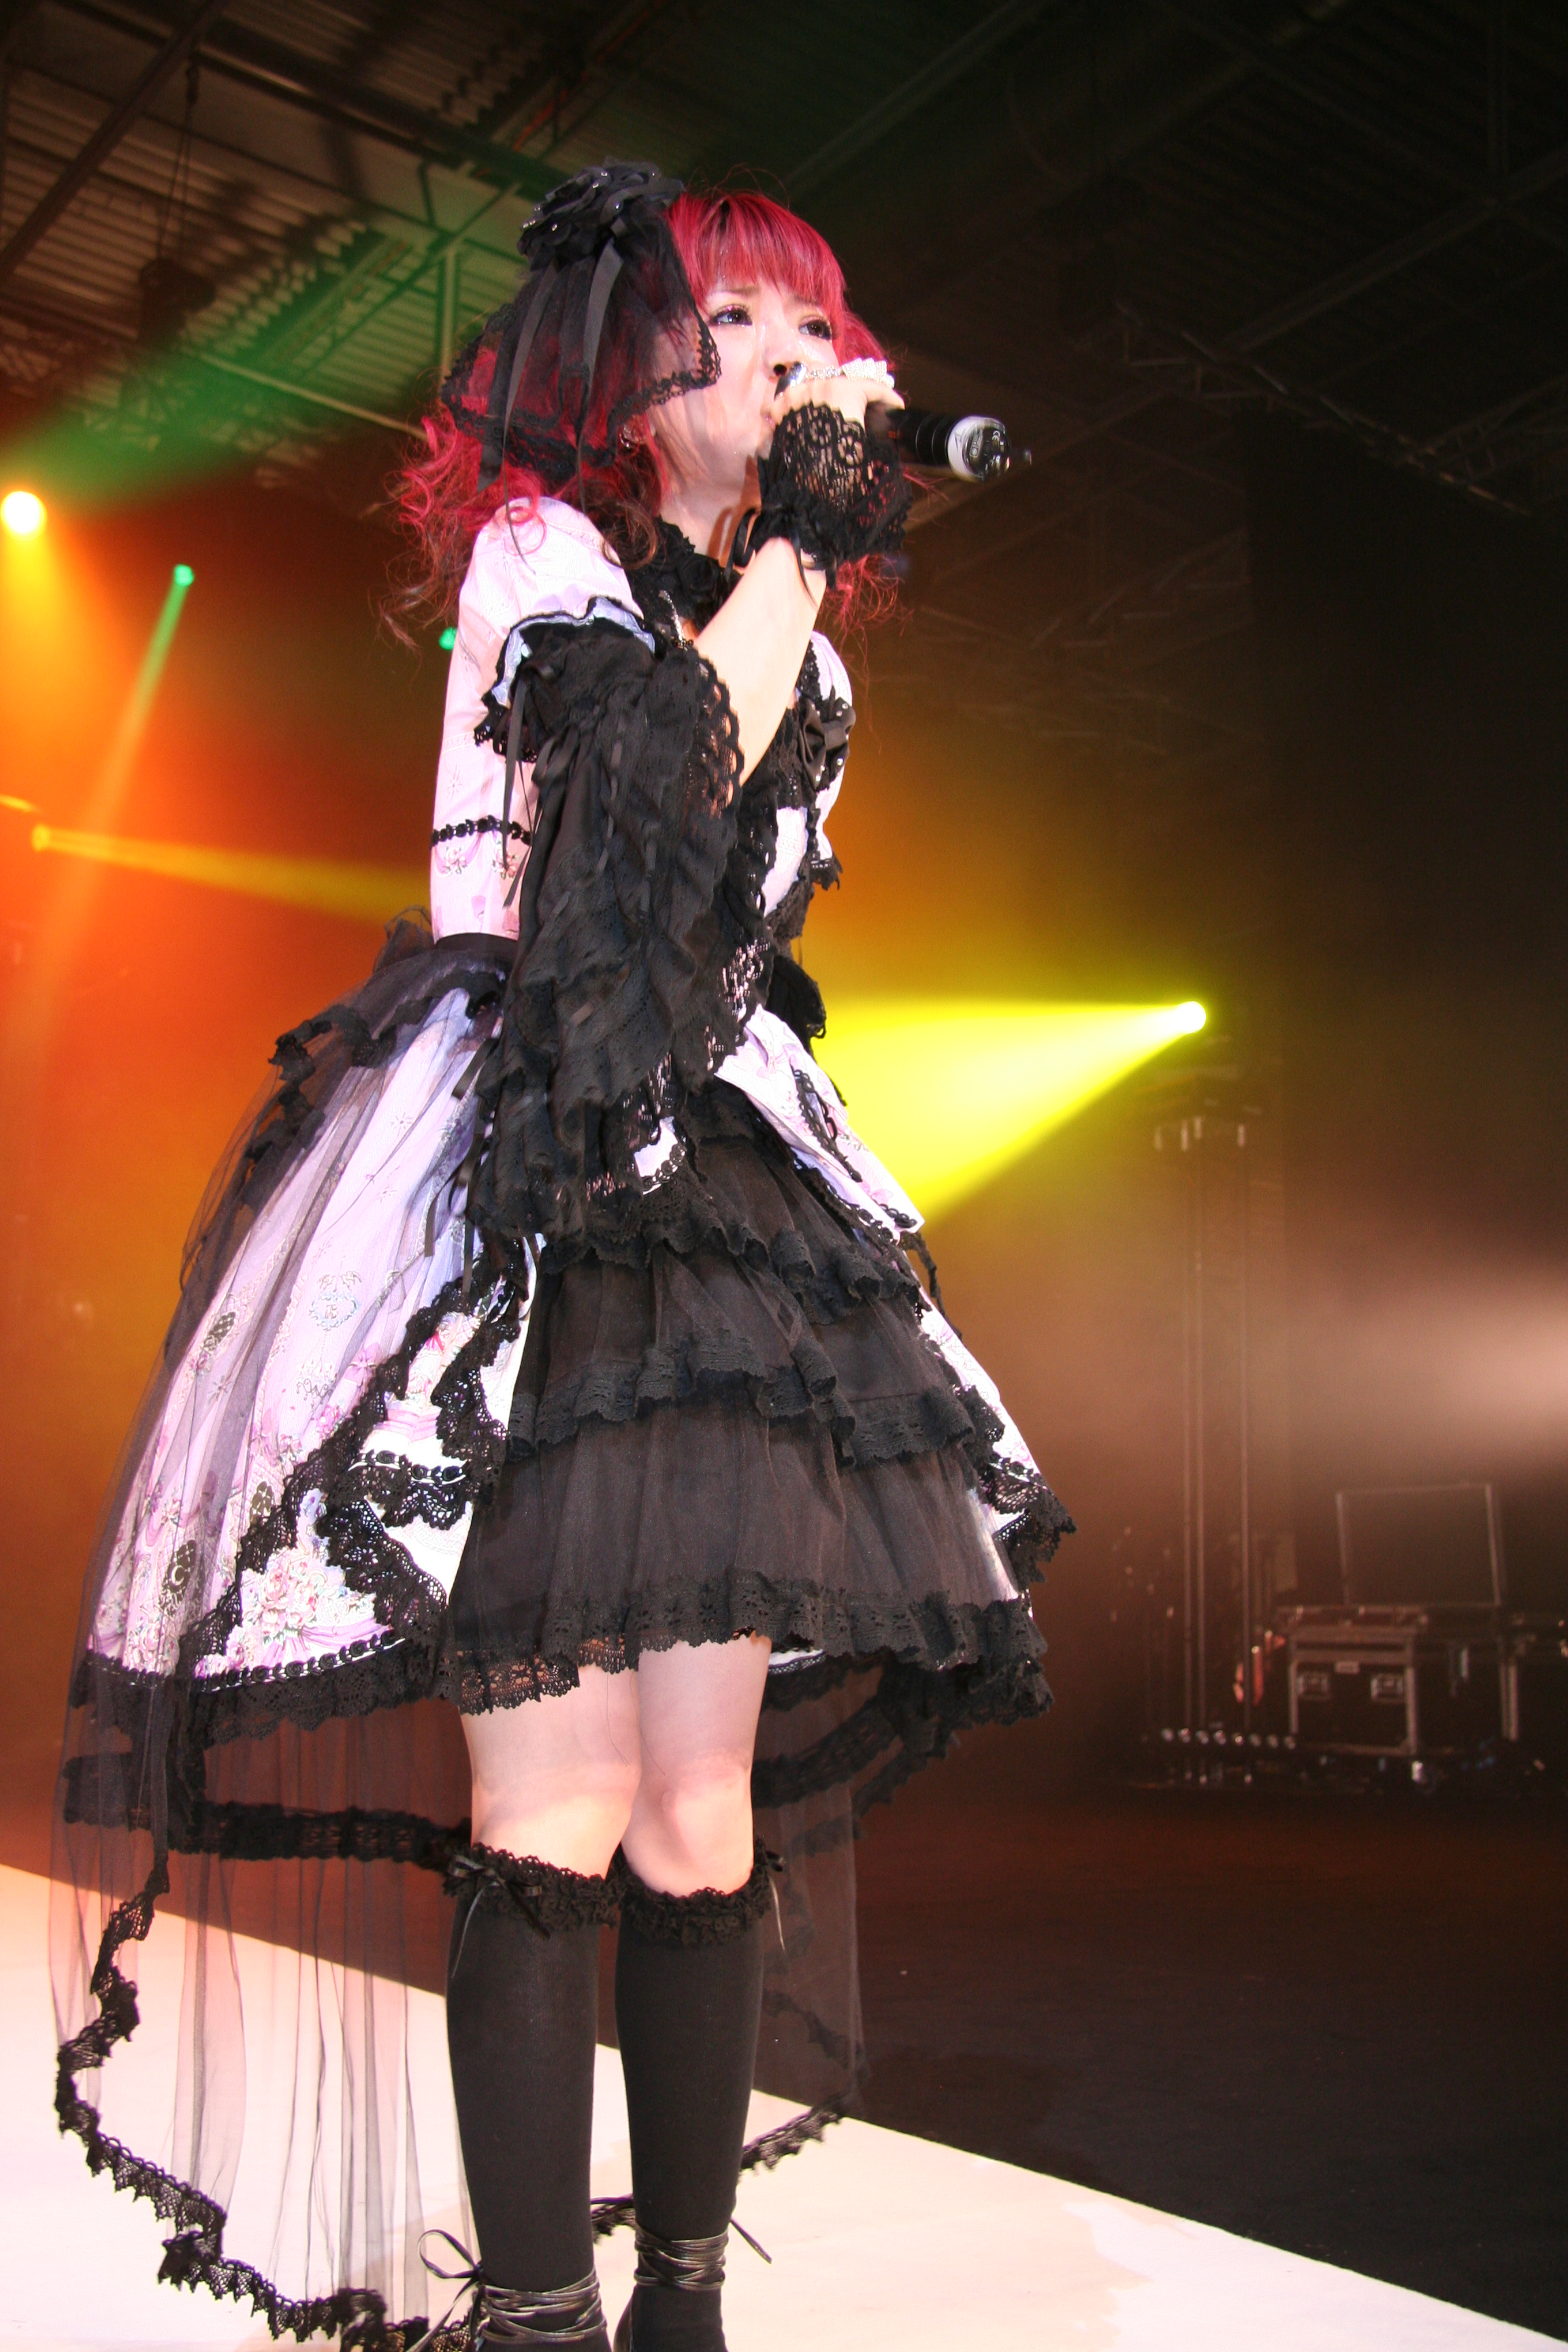 http://upload.wikimedia.org/wikipedia/commons/d/de/Nana_Kitade_20070707_Japan_Expo_19.jpg